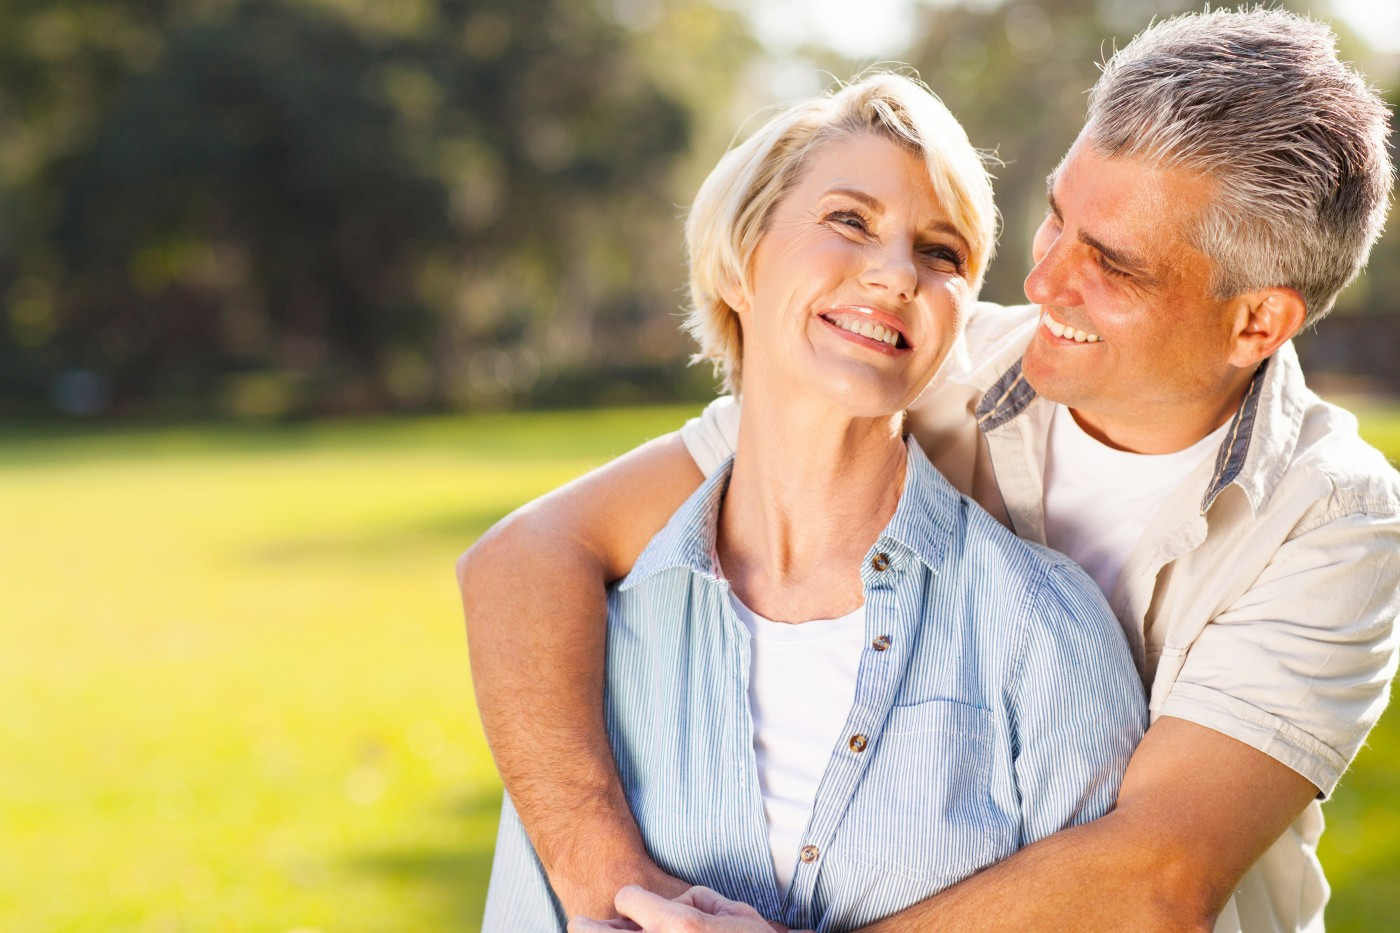 Men Exhibit Worse Memory Performance than Women During the Aging Process